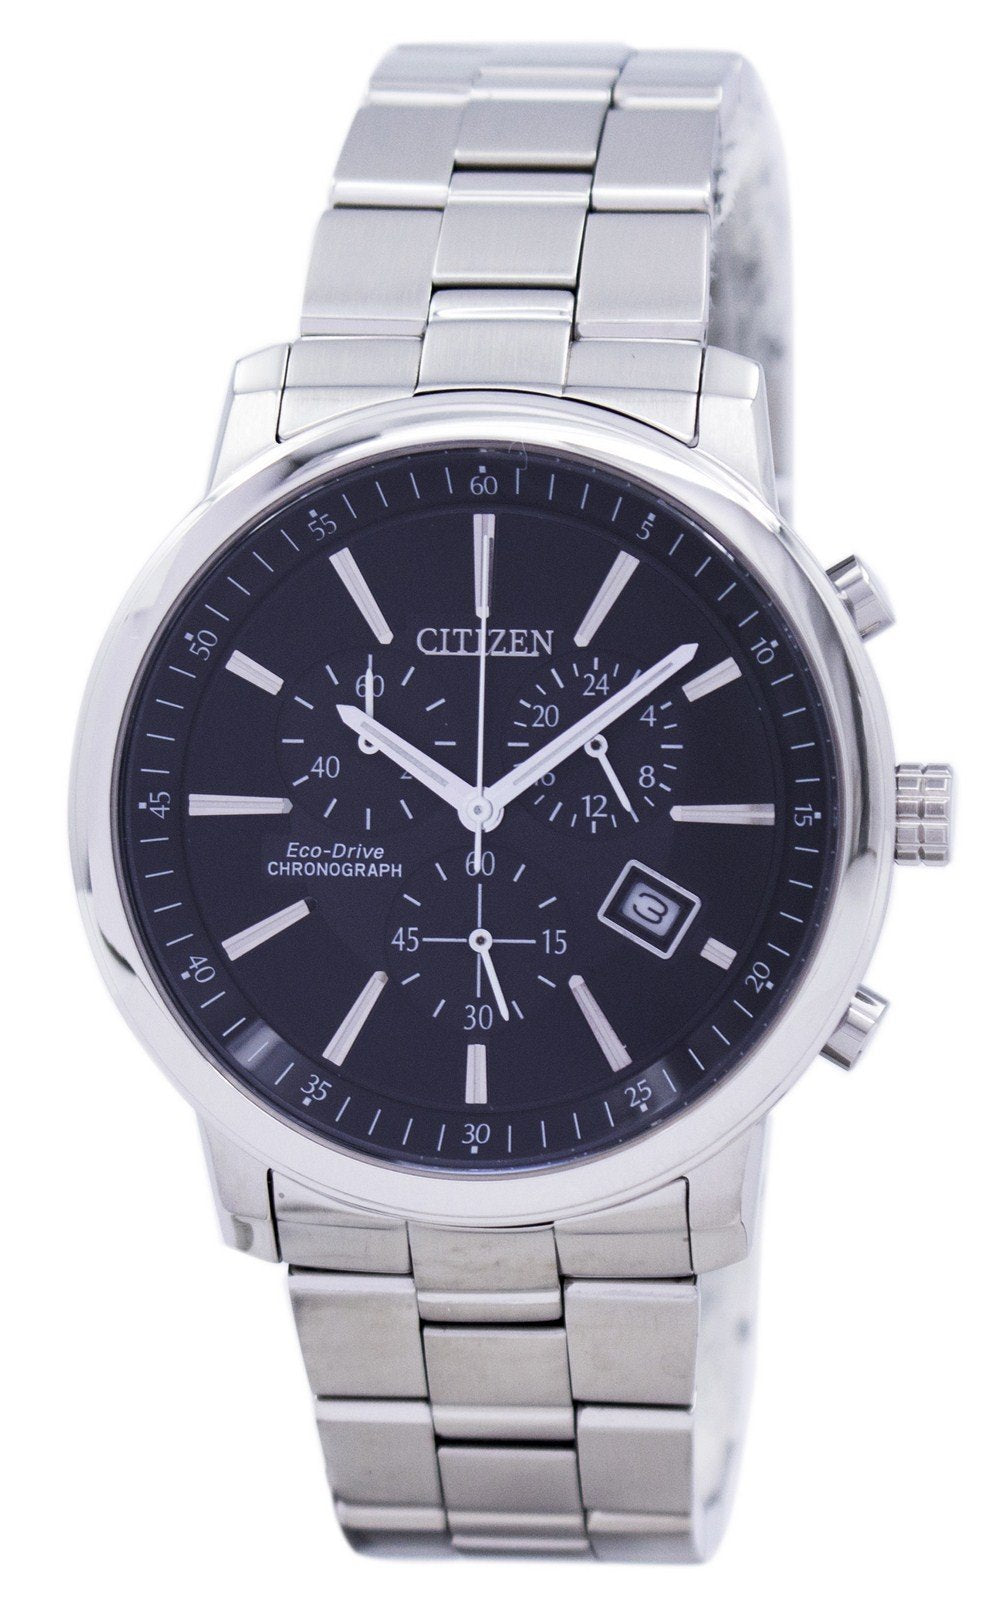 Citizen Eco-Drive Chronograph AT0490-54E Men's Watch